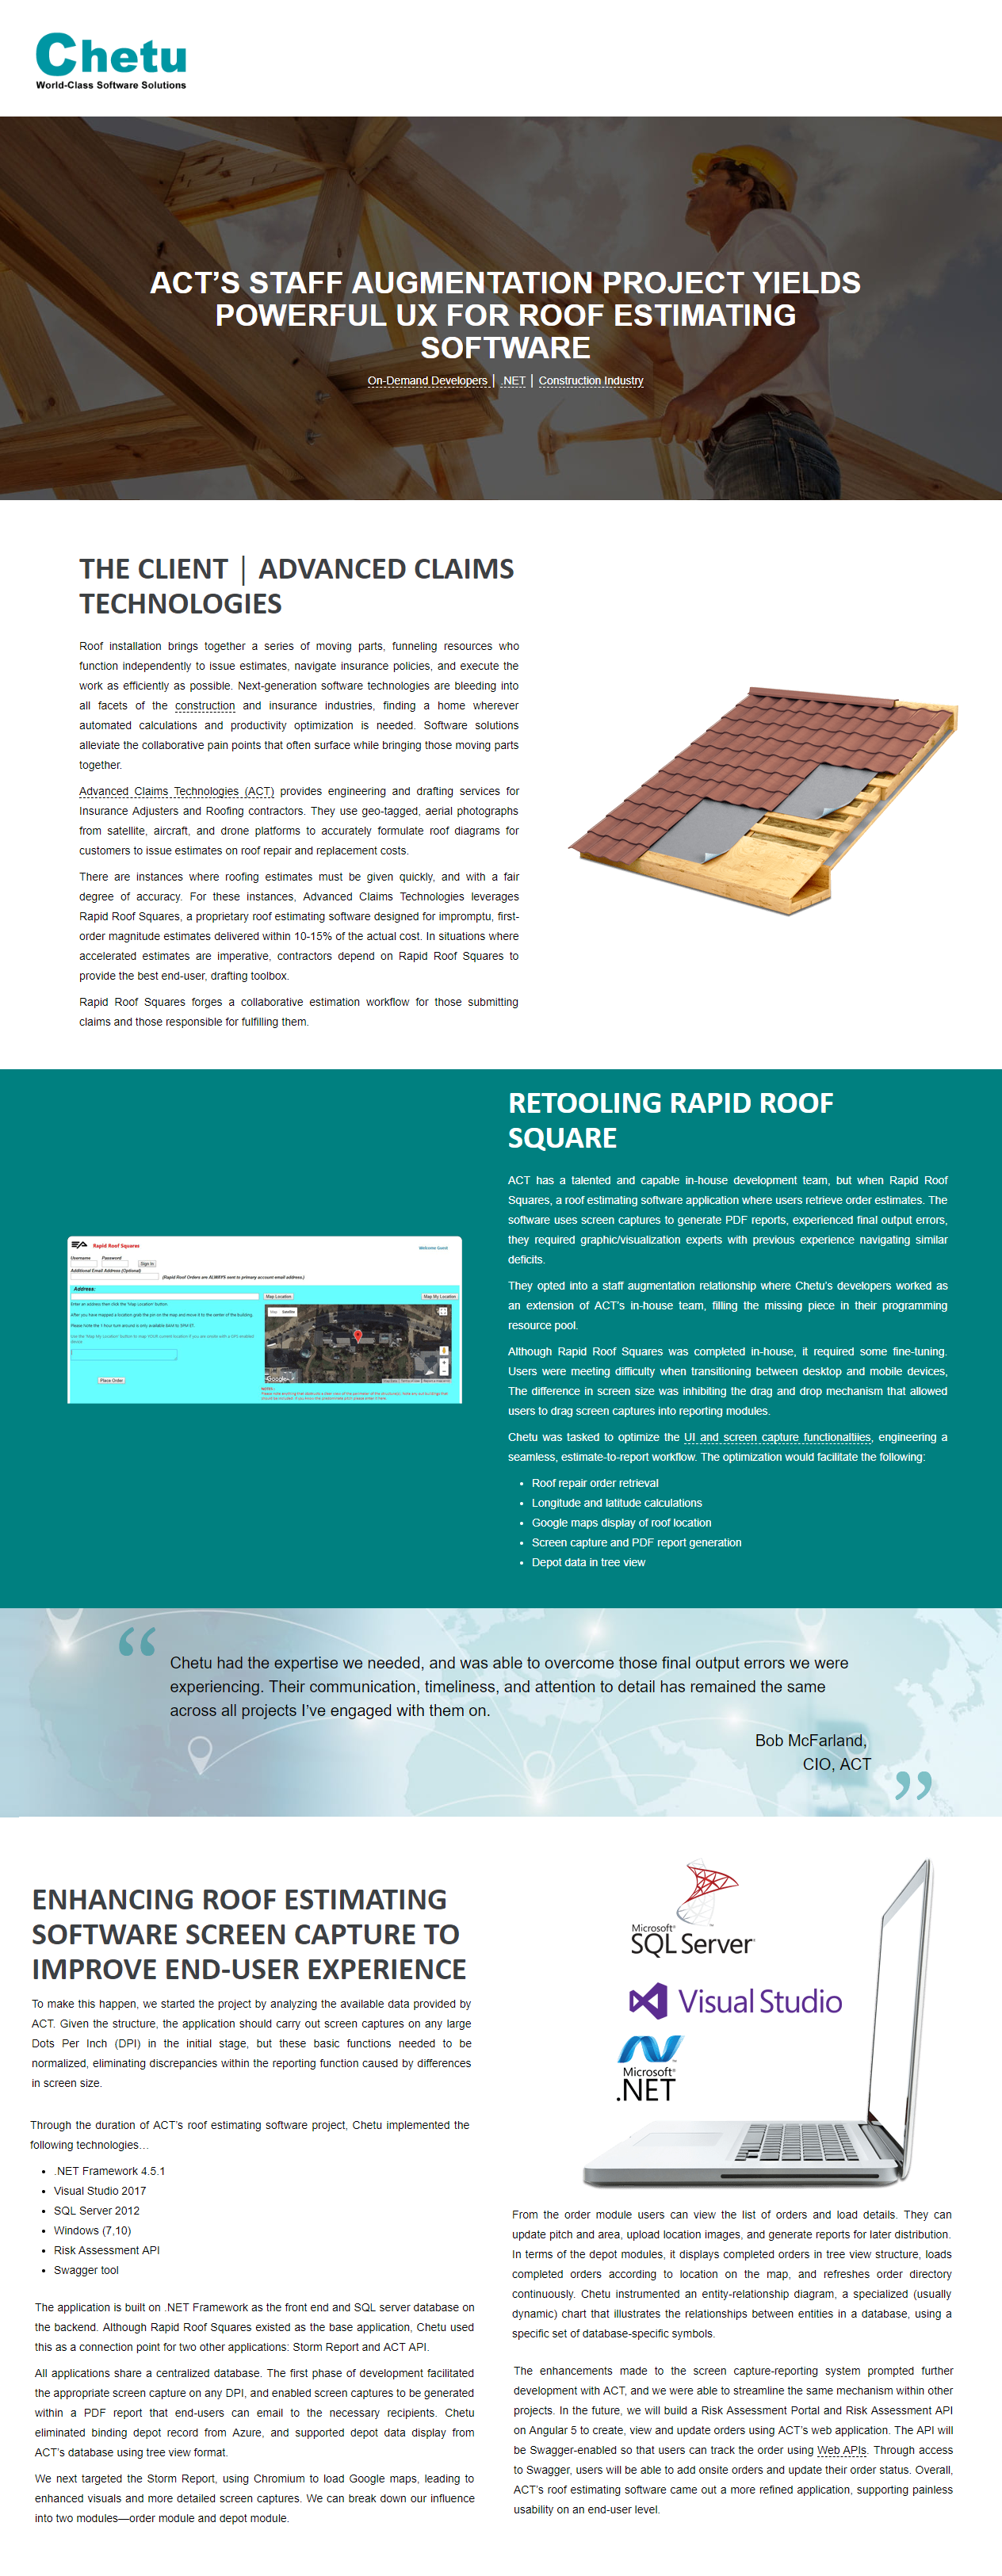 Chetu Demo - Chetu-Case-Study---STAFF-AUGMENTATION-PROJECT-YIELDS-POWERFUL-UX-FOR-ROOF-ESTIMATING-SOFTWARE.png